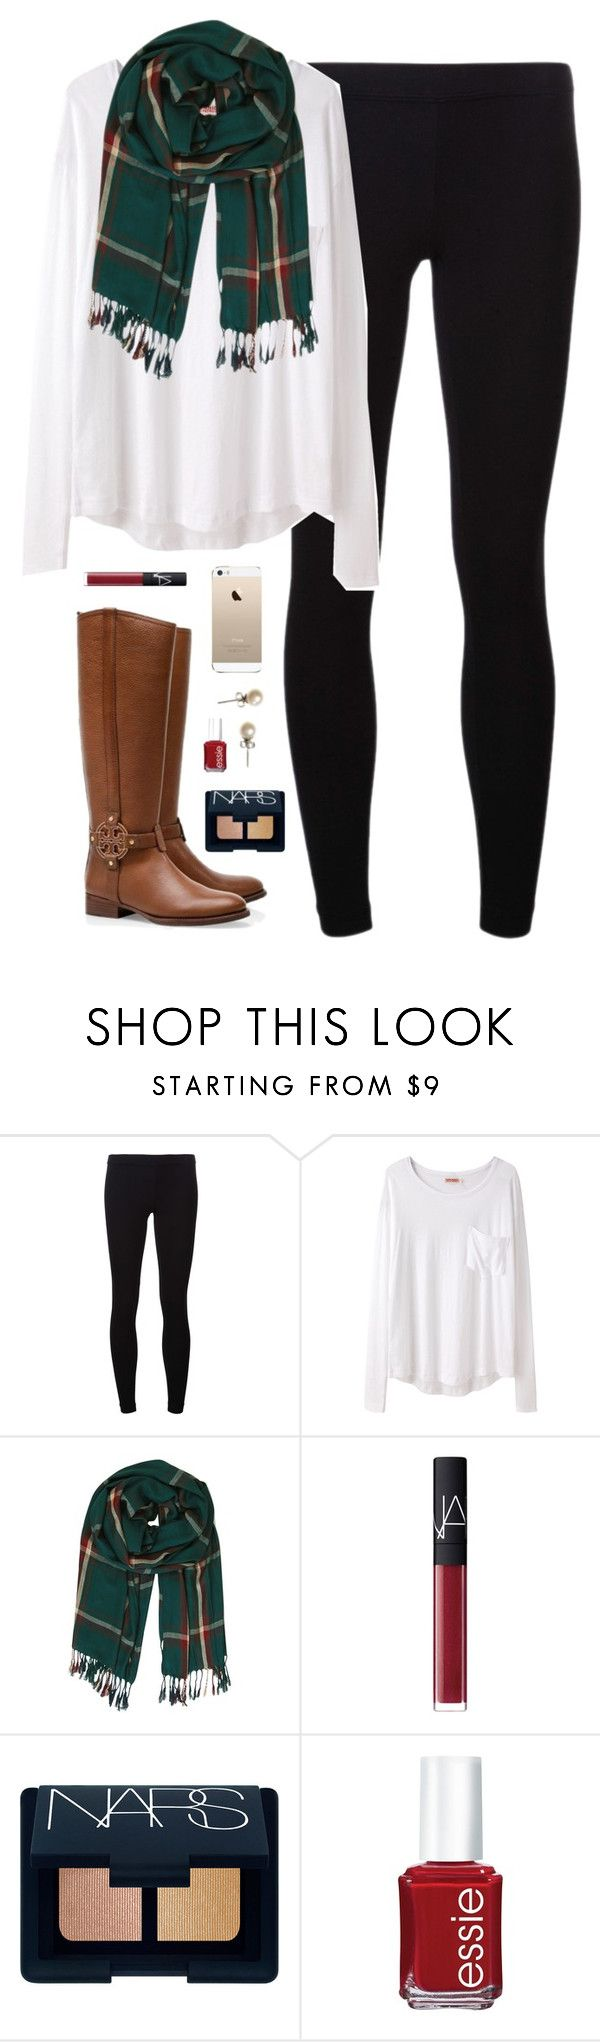 """""""sleepy & cold"""" by classically-preppy ❤ liked on Polyvore featuring James Perse, Organic by John Patrick, Humble Chic, Tory Burch, NARS Cosmetics, Essie and J.Crew"""